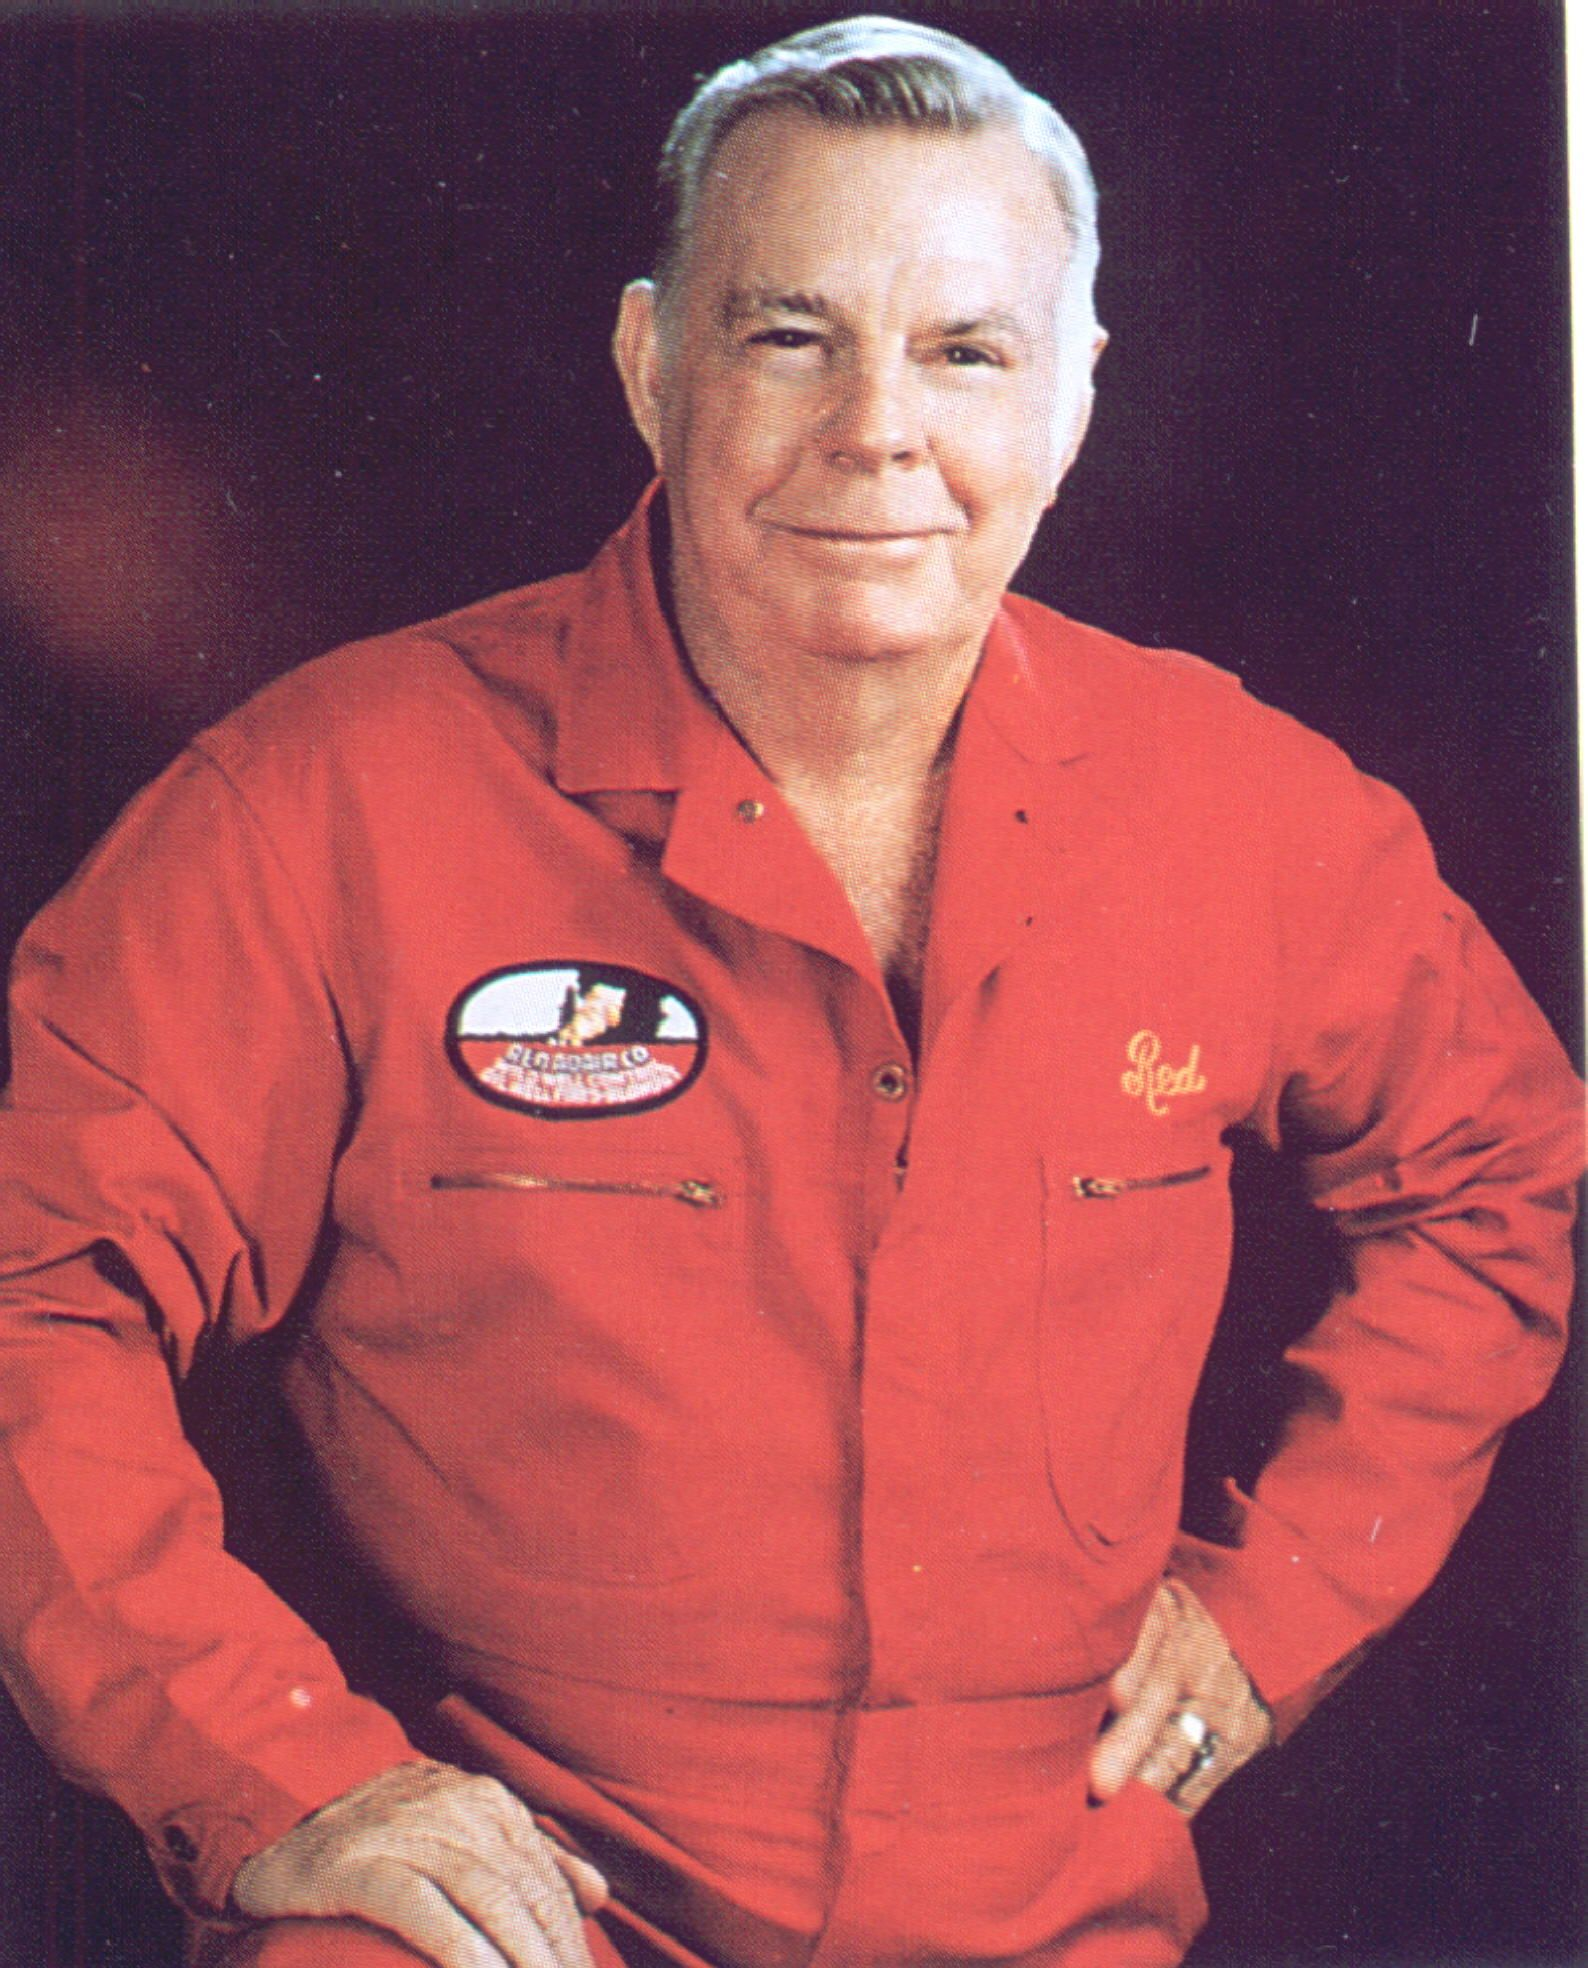 "Paul Neil ""Red"" Adair was born in Houston, TX on June 18, 1915 - Oil field firefighter extraordinaire!"